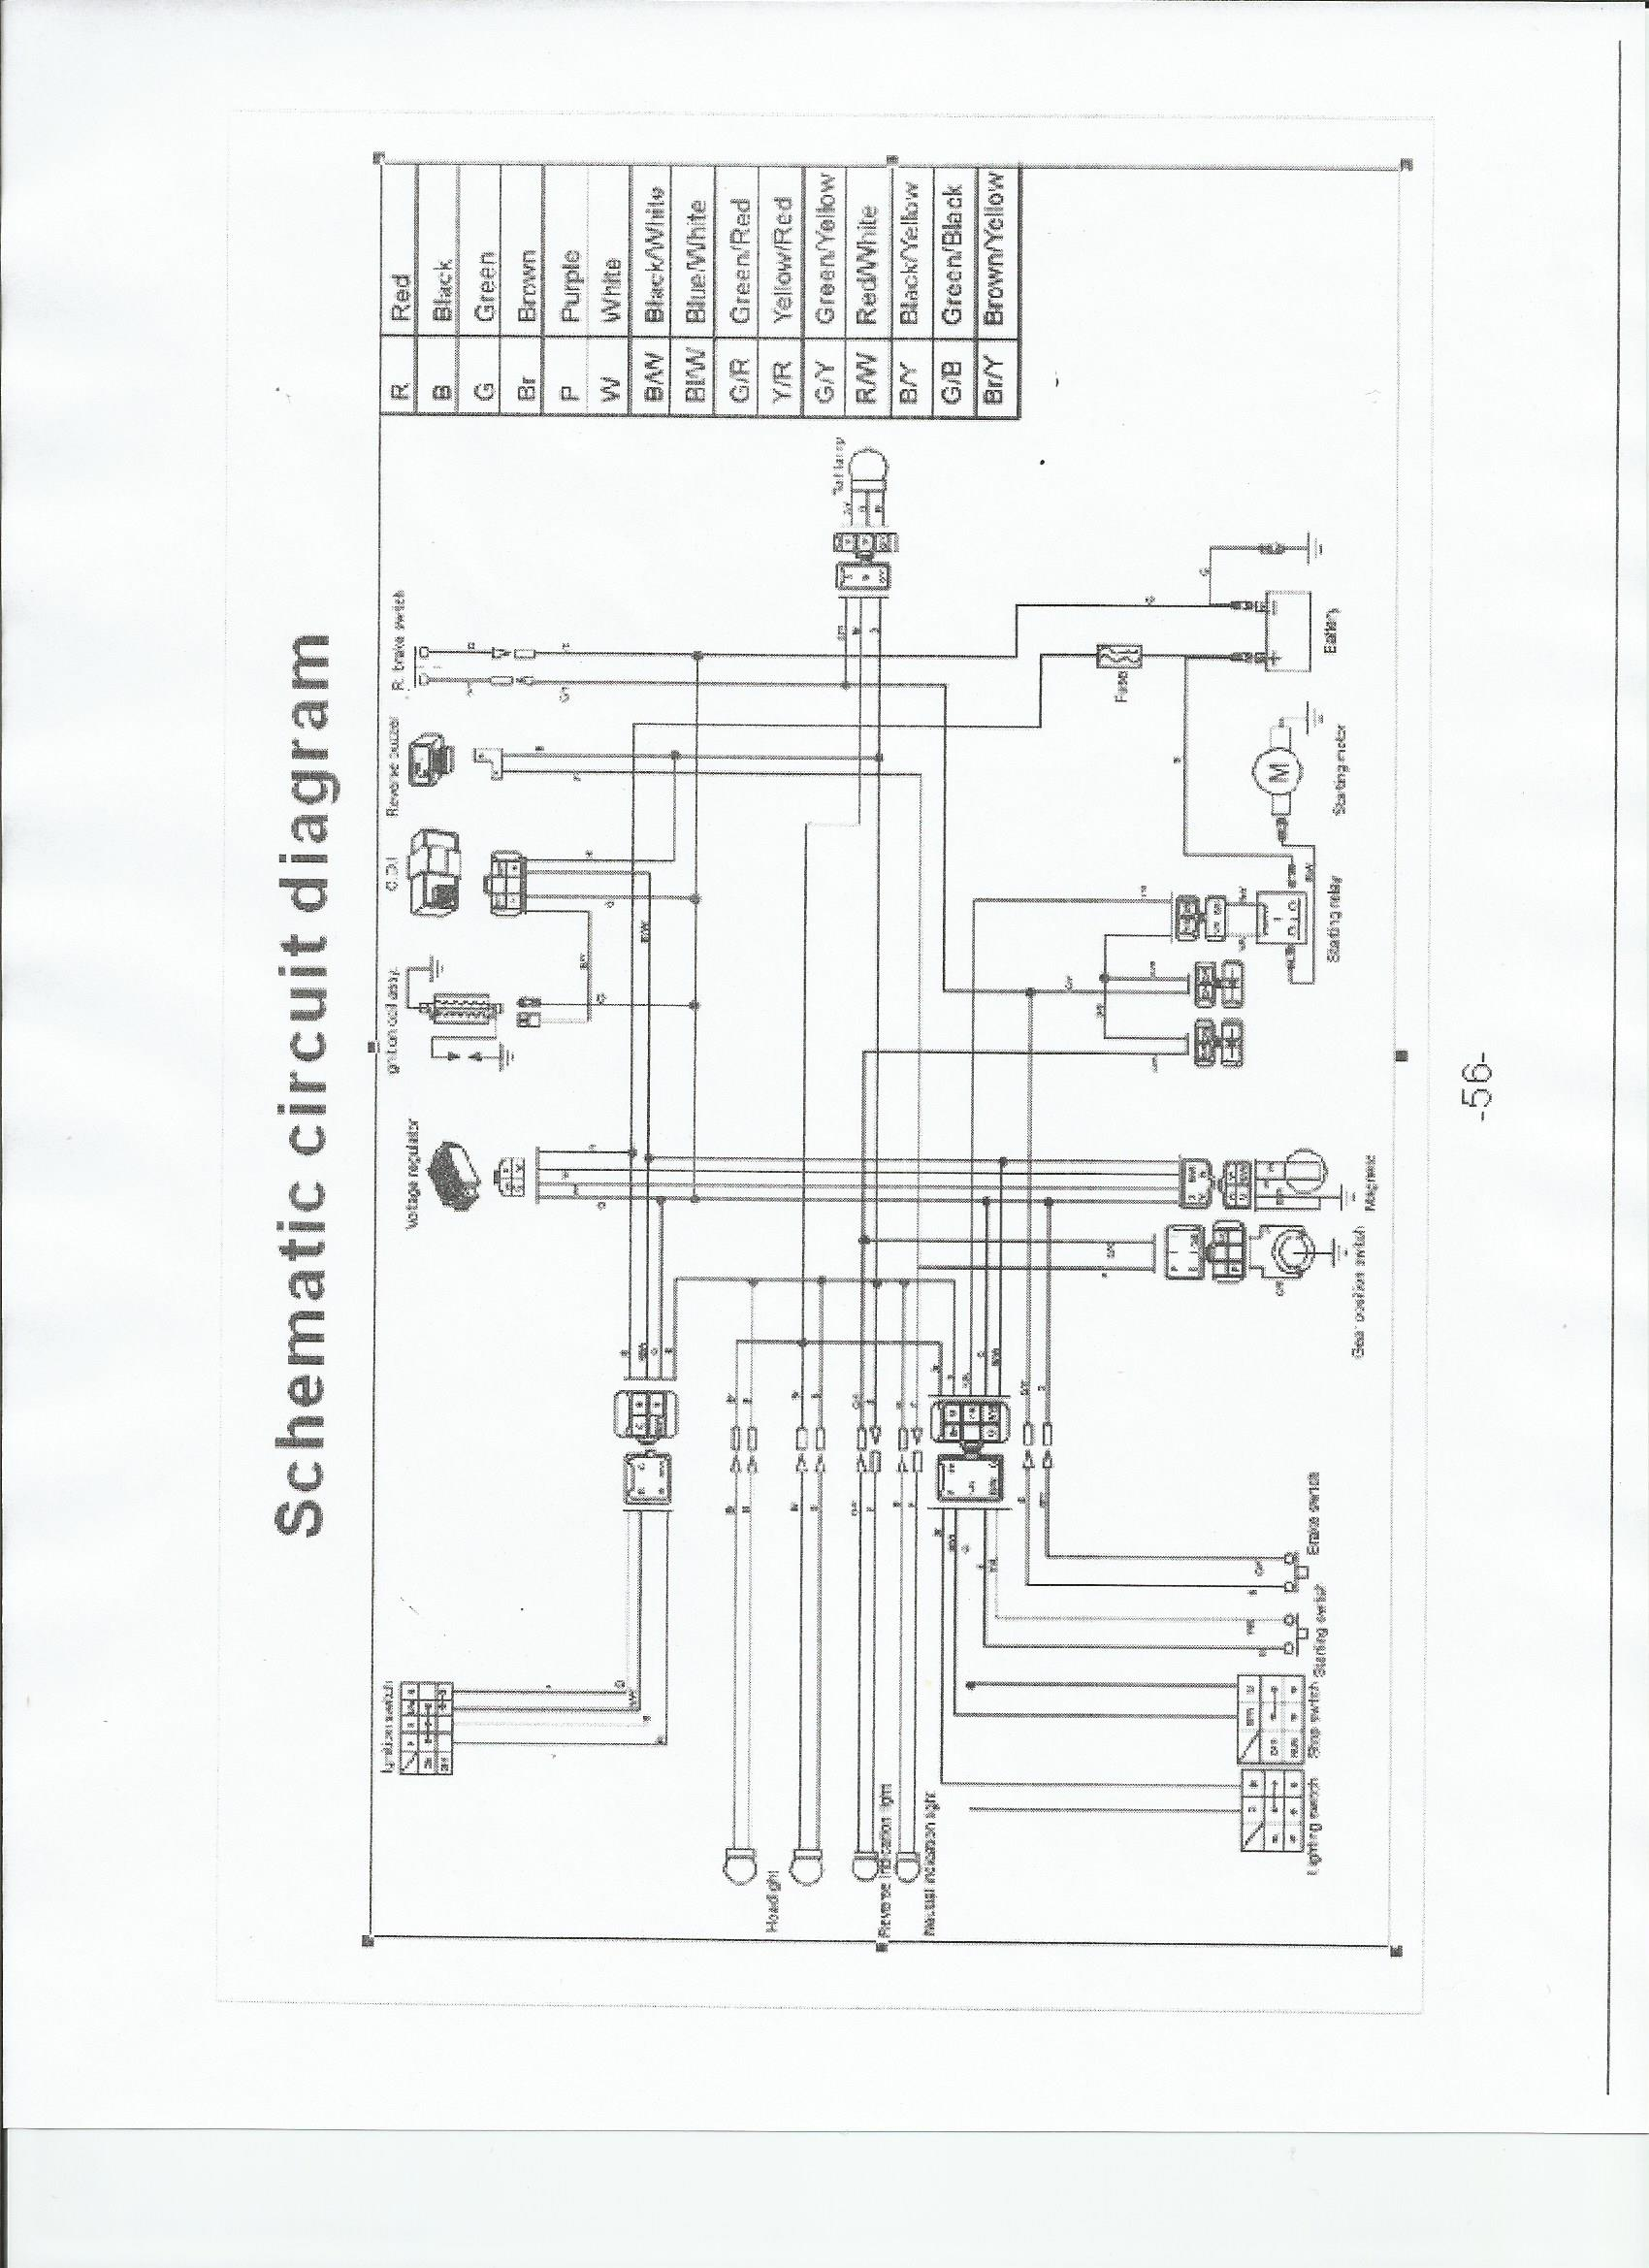 hight resolution of buyang motorcycle wiring diagram simple wiring schema along with pocket bike wiring 49cc moreover tao tao 110 wiring diagram